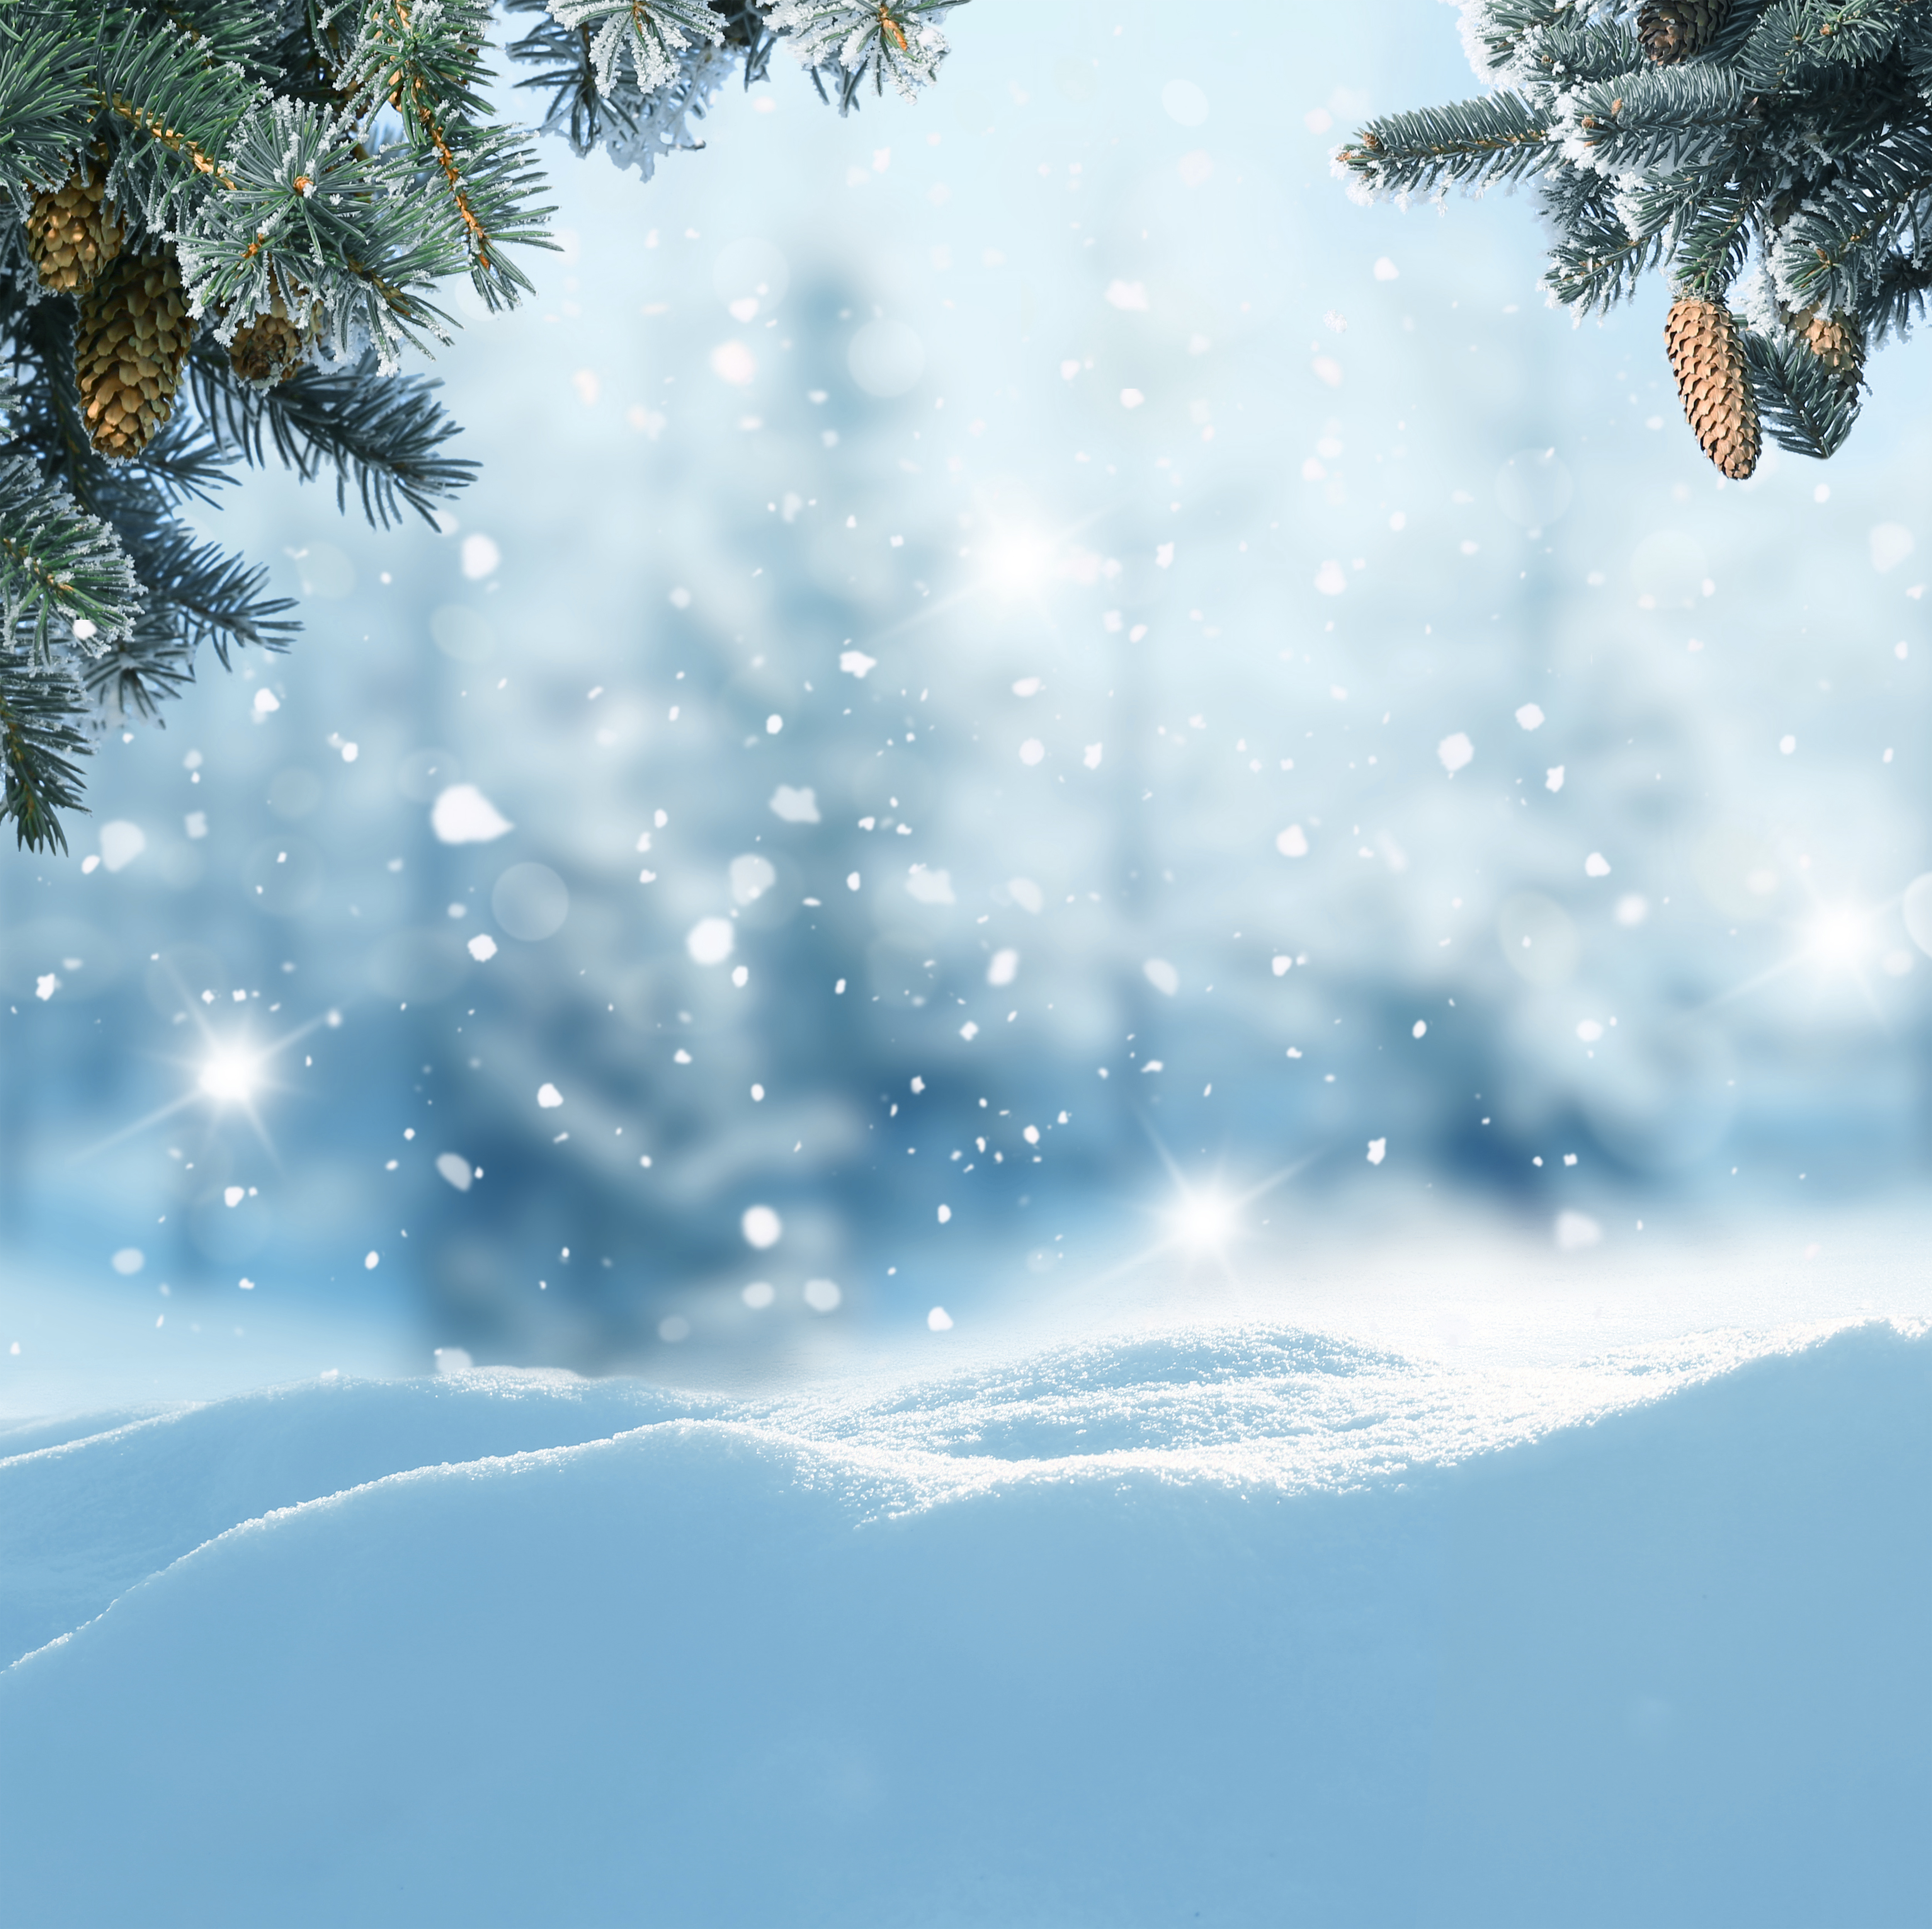 Snowy background clipart svg transparent Winter Snowy Background with Pine Branches | Gallery ... svg transparent